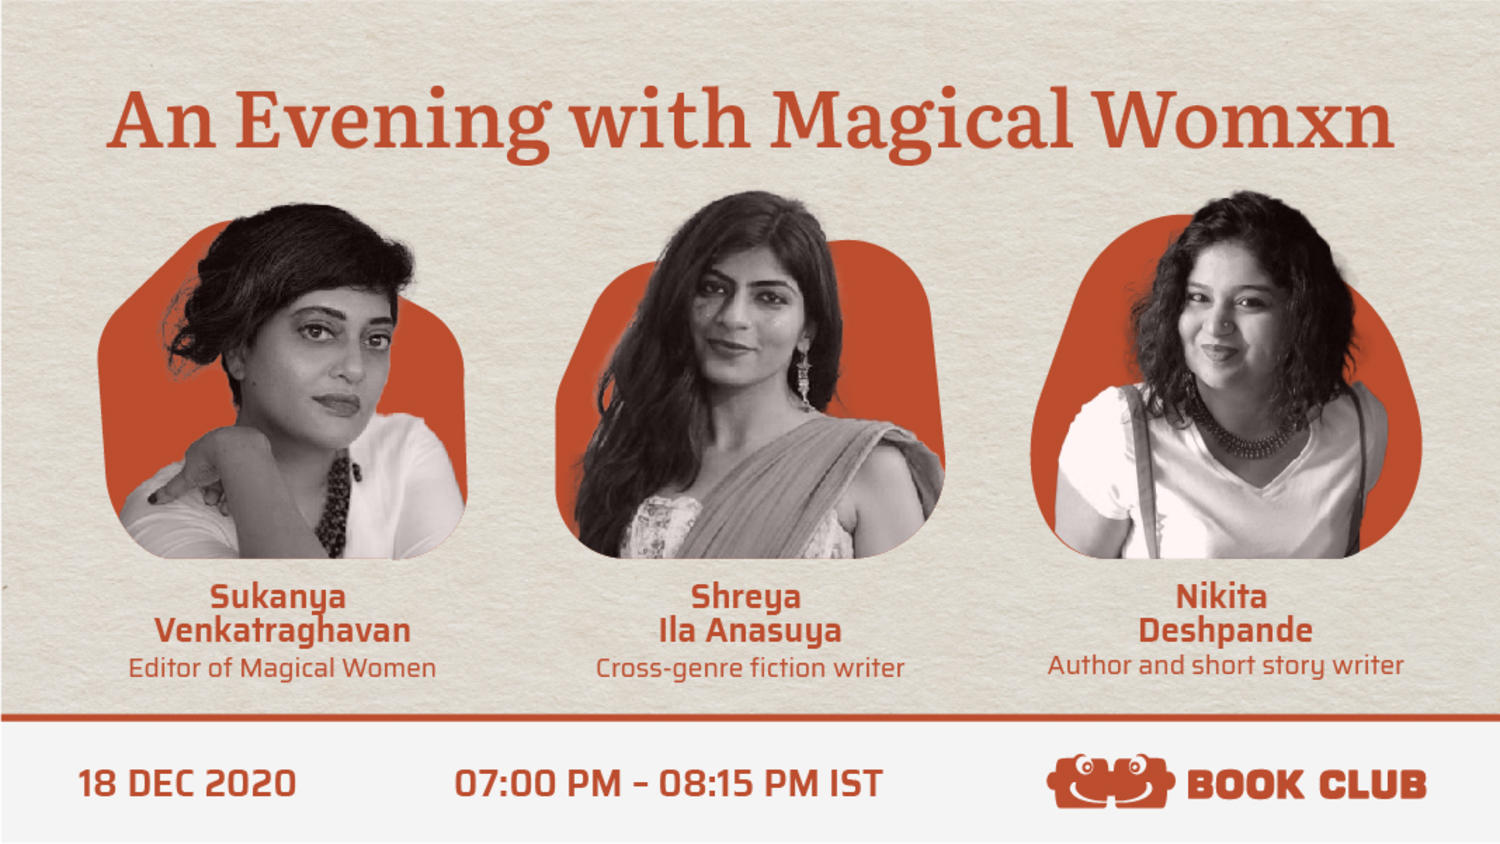 An Evening with Magical Womxn